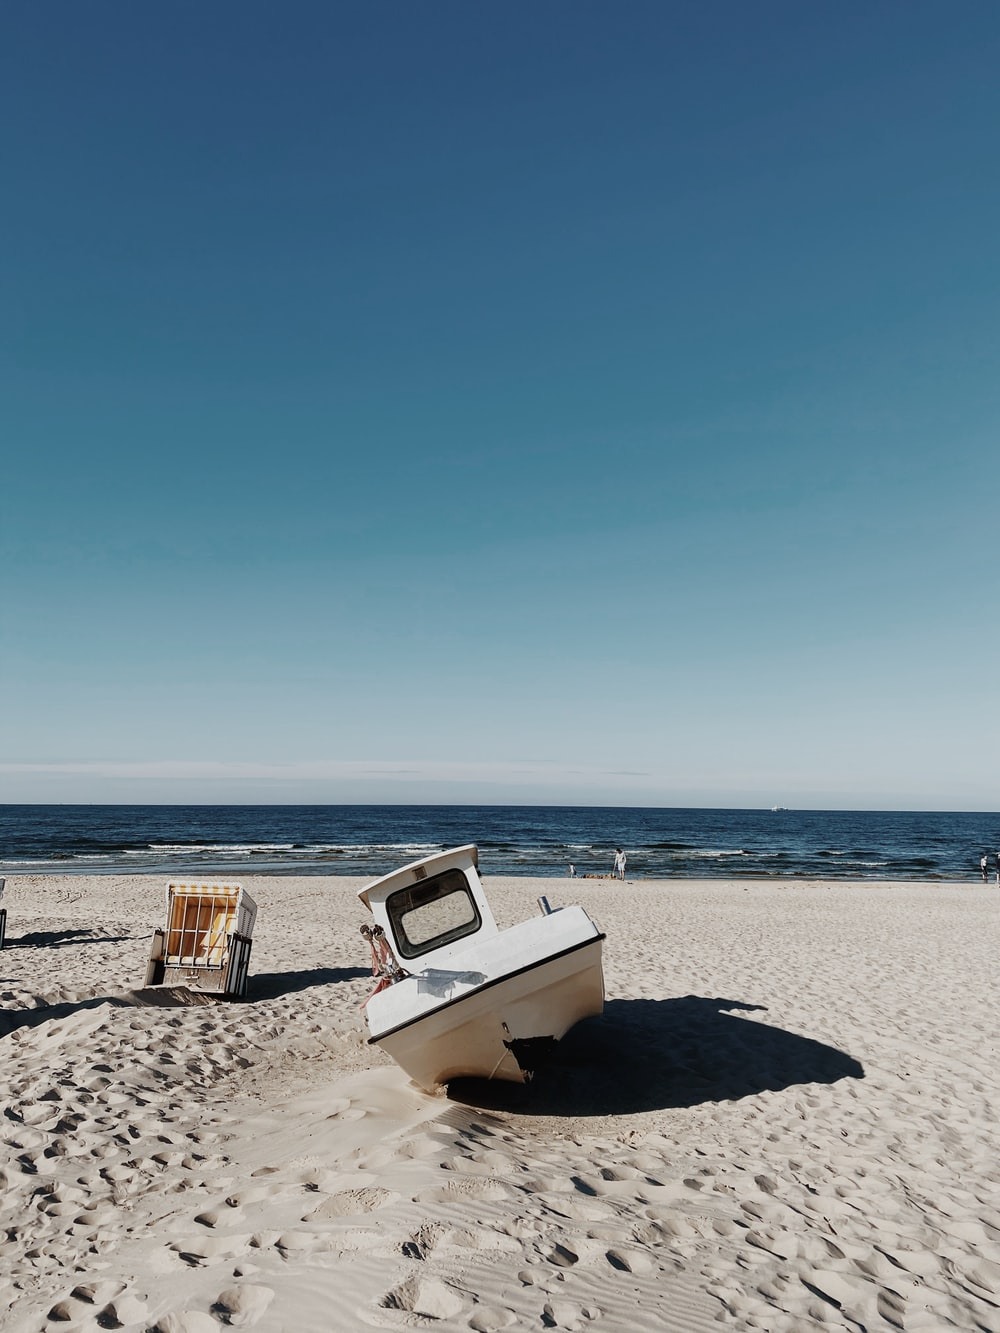 white and brown boat on beach during daytime